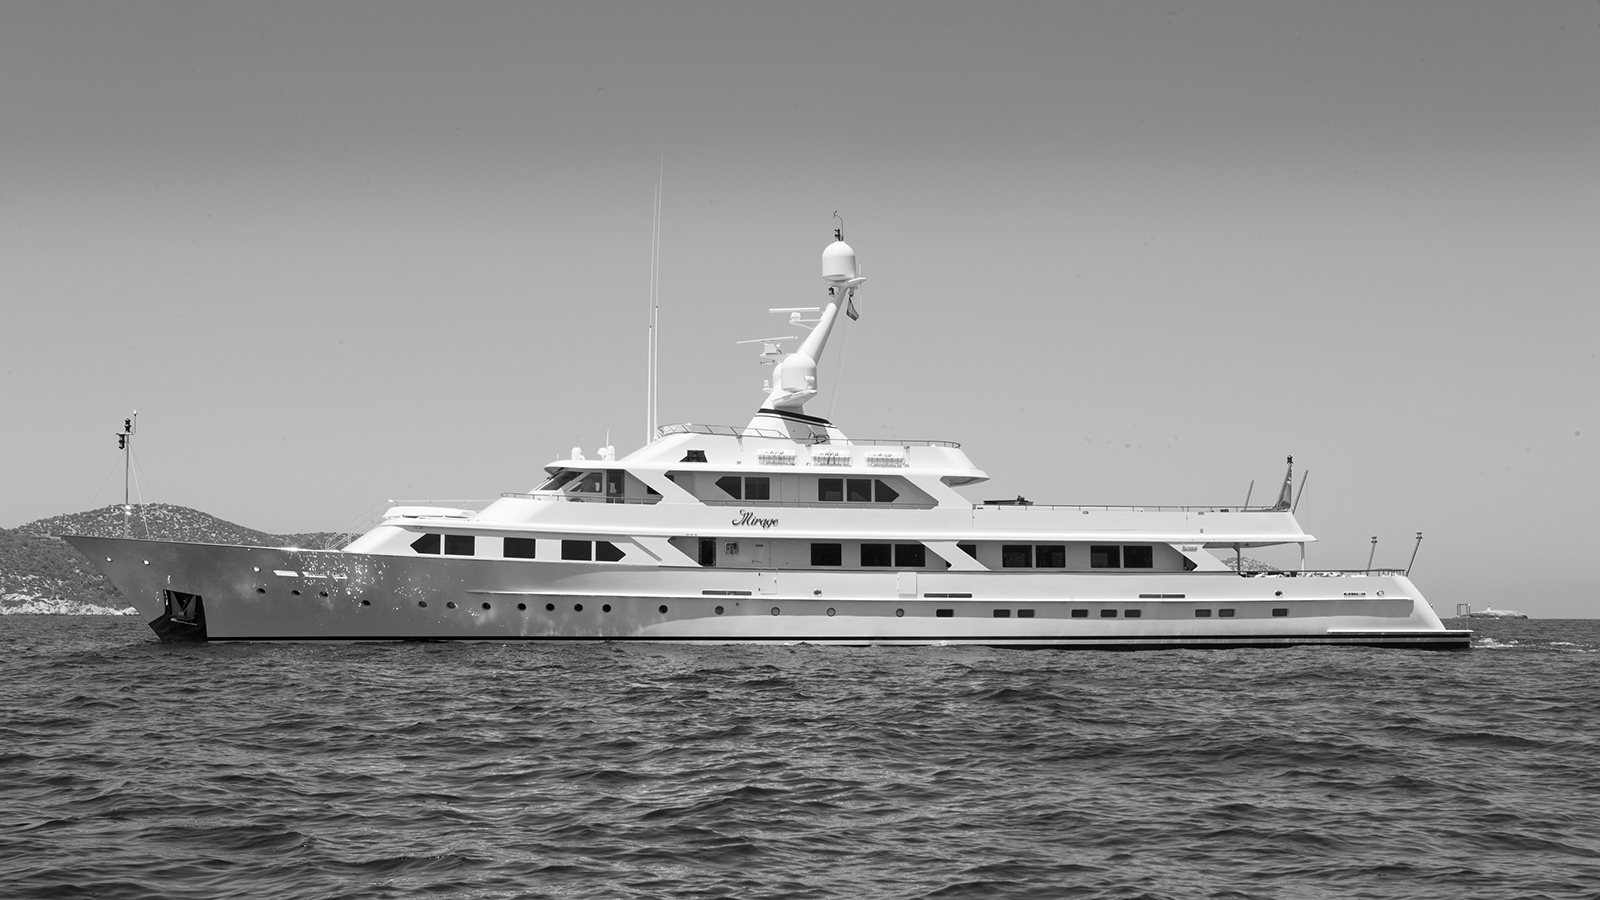 side-view-of-classic-feadship-super-yacht-mirage